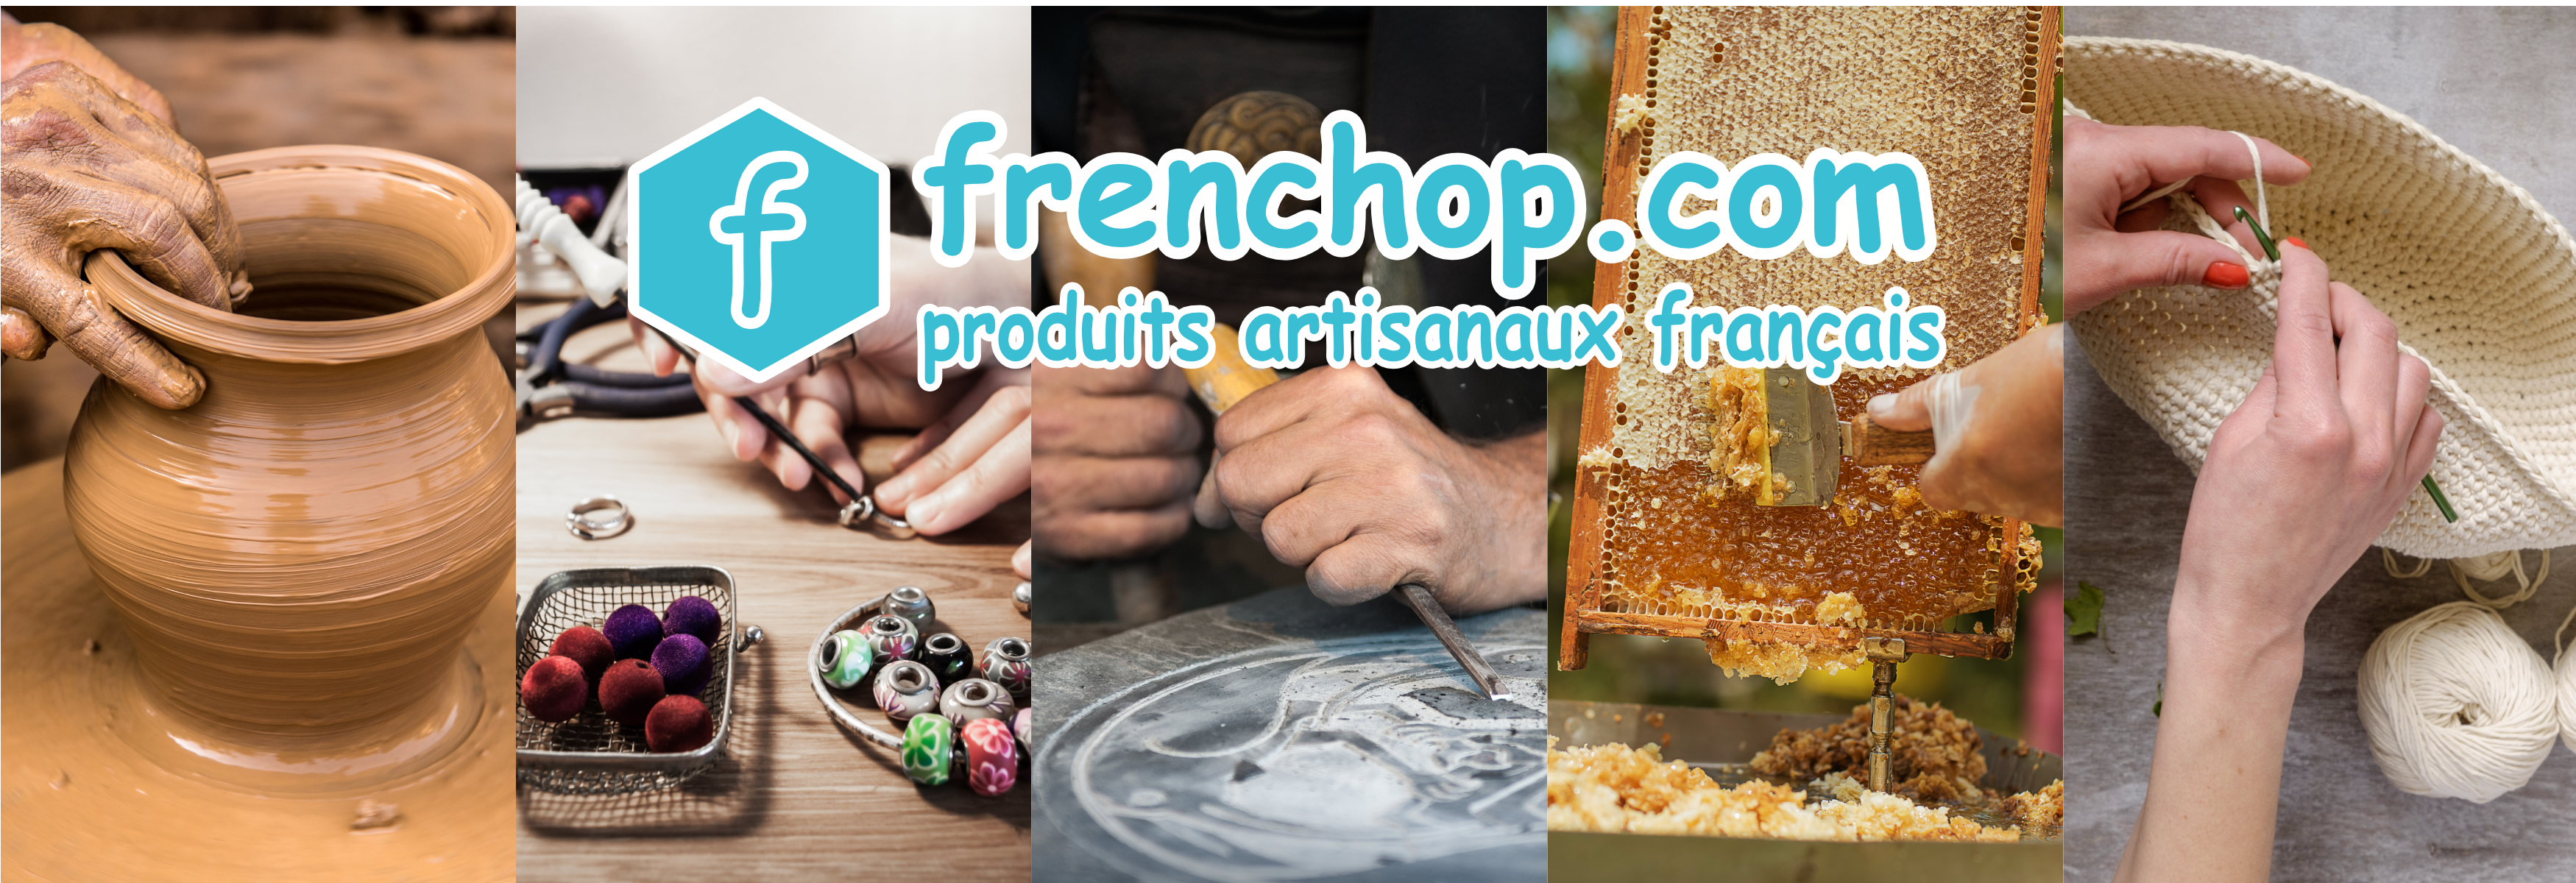 Frenchop - Produits artisanaux français - 100% made in France.